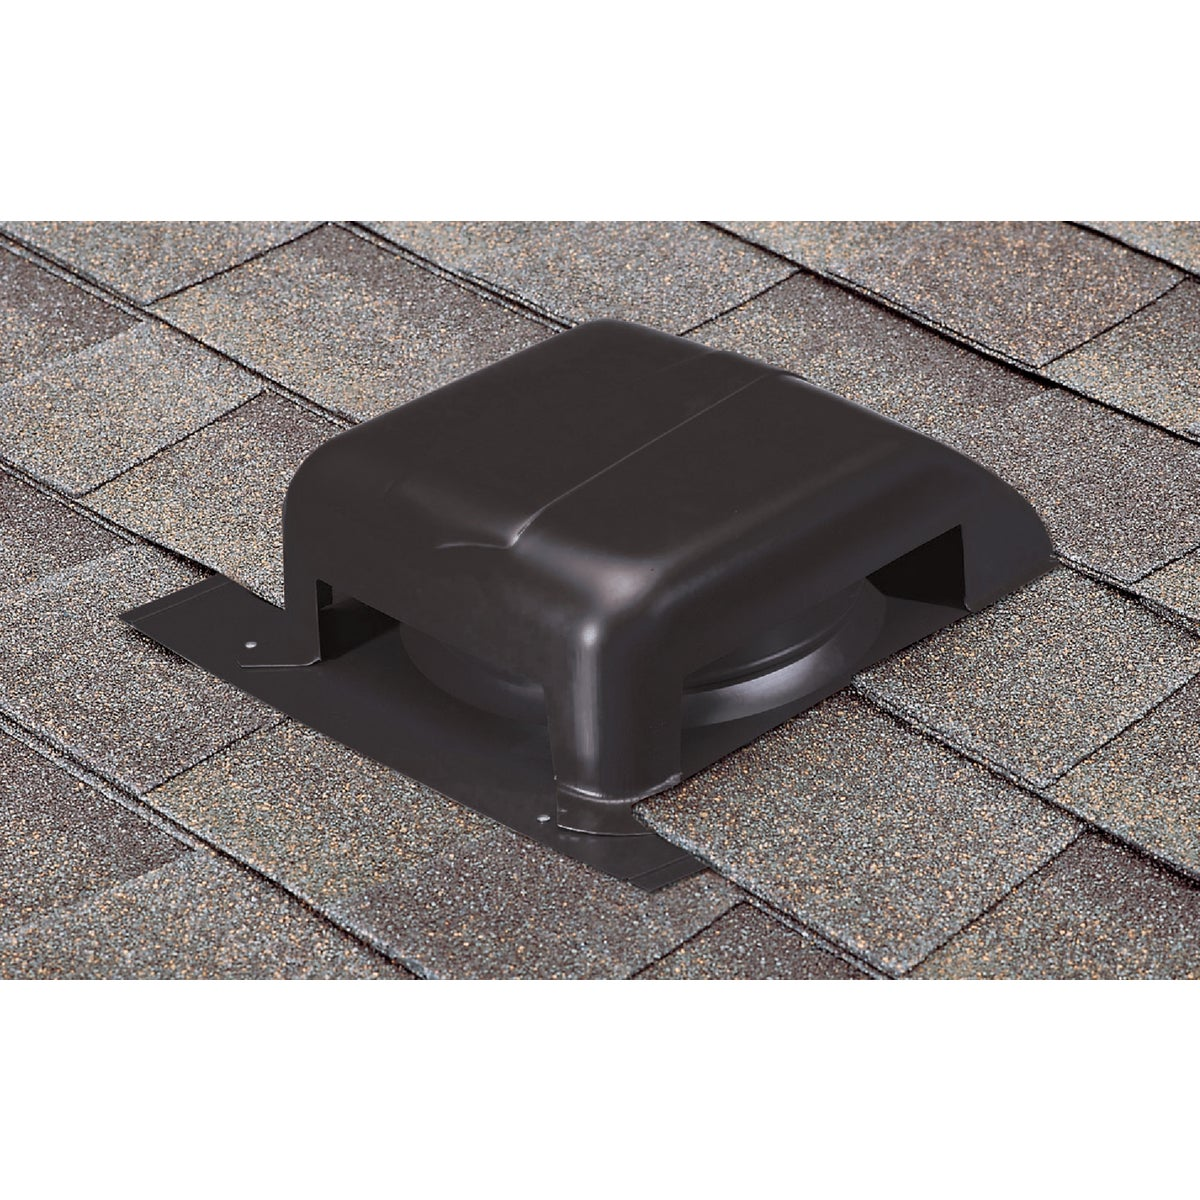 "40""BLK GAV S/B ROOF VENT - RVG40010 by Air Vent Inc"